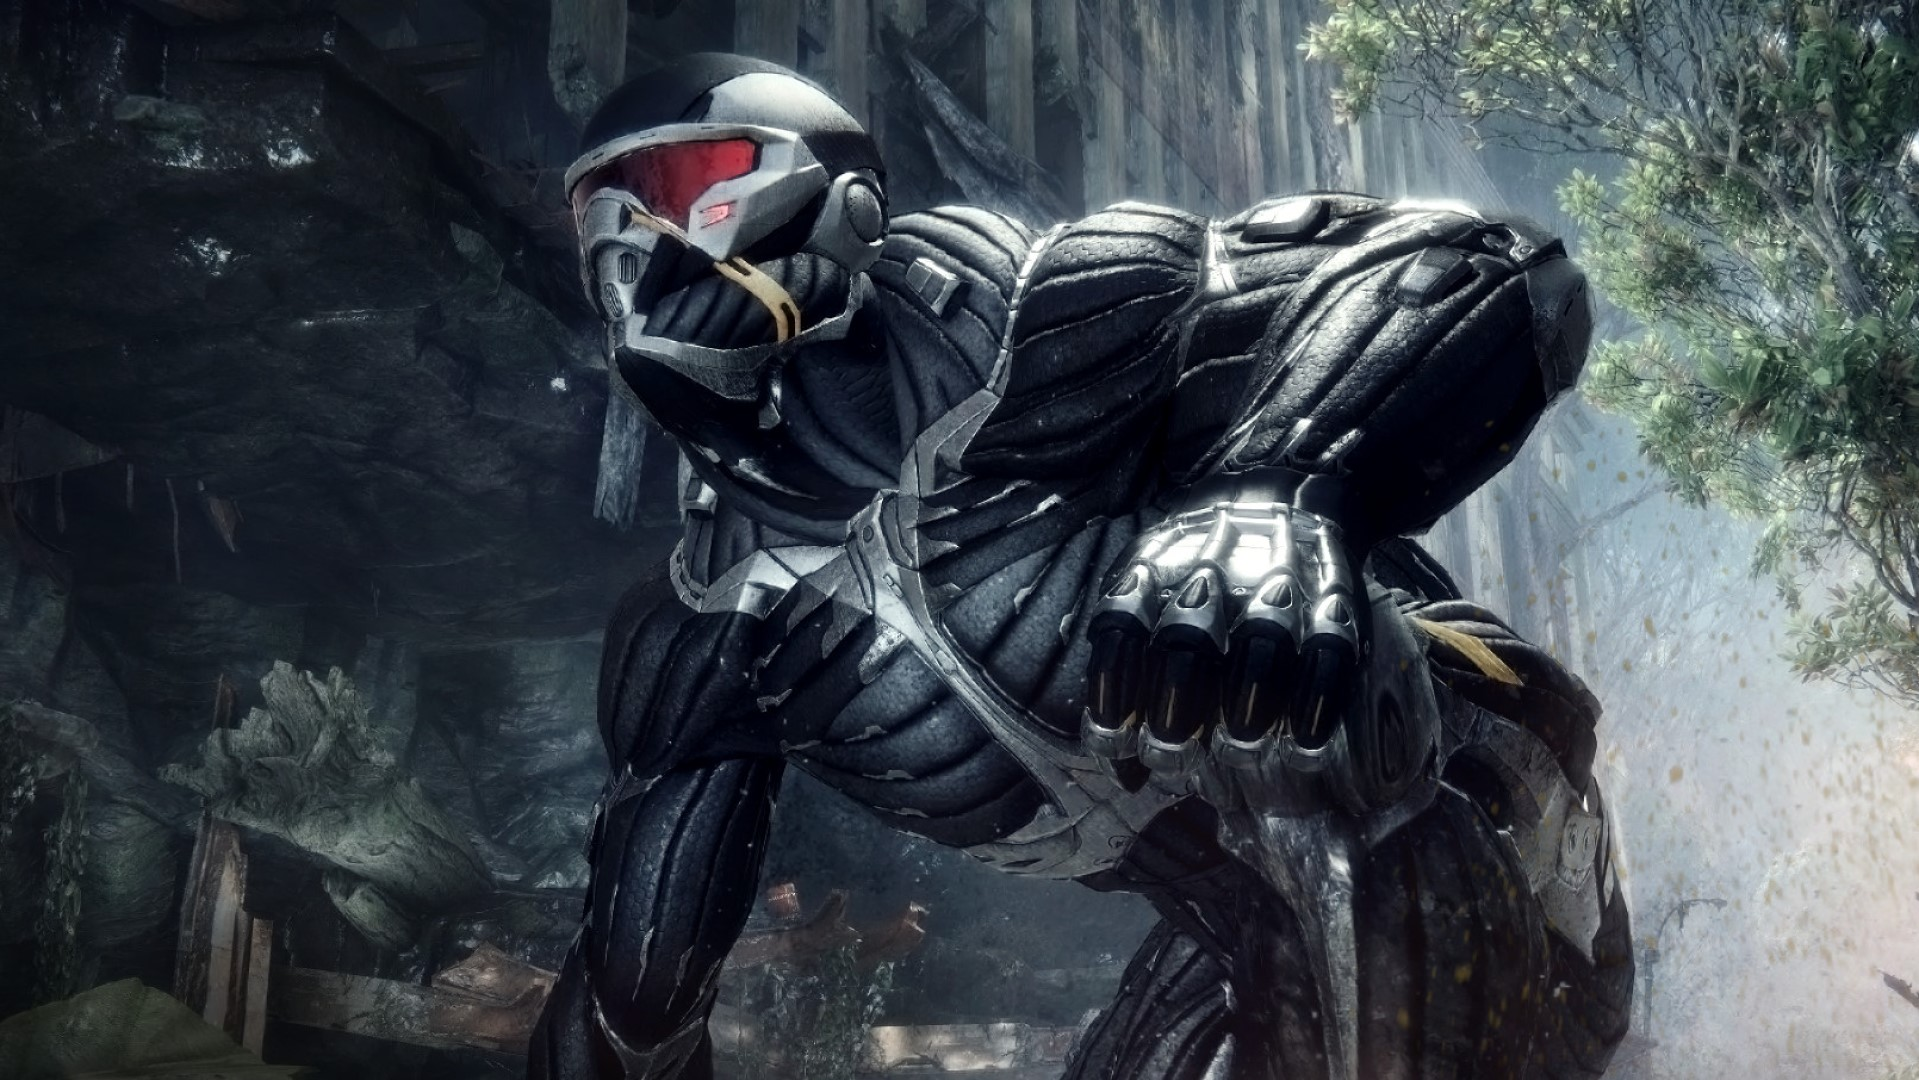 The whole Crysis trilogy is getting a remaster, and it's coming out this fall